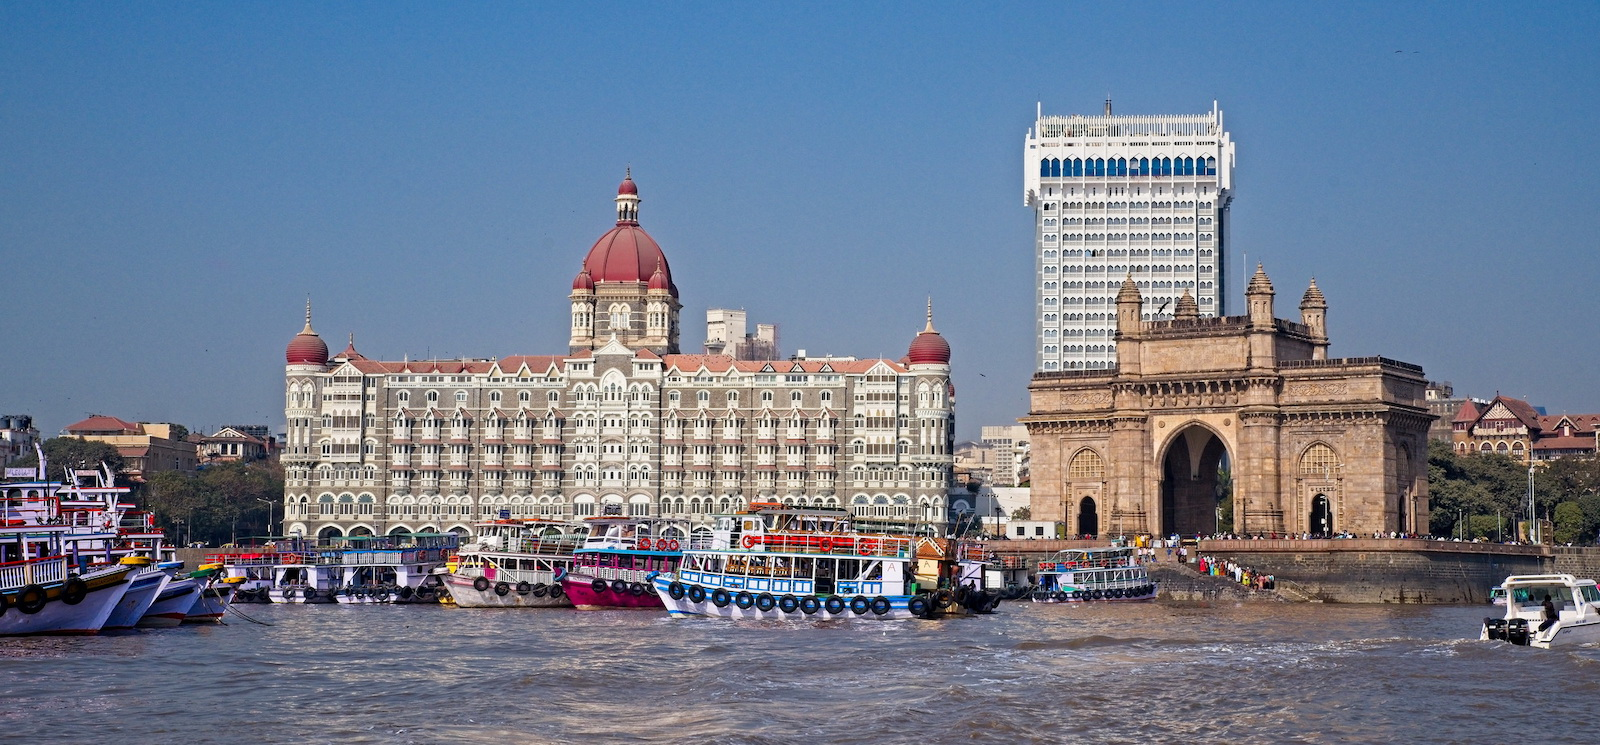 Taj Mahal Palace Hotel and The Gateway to India